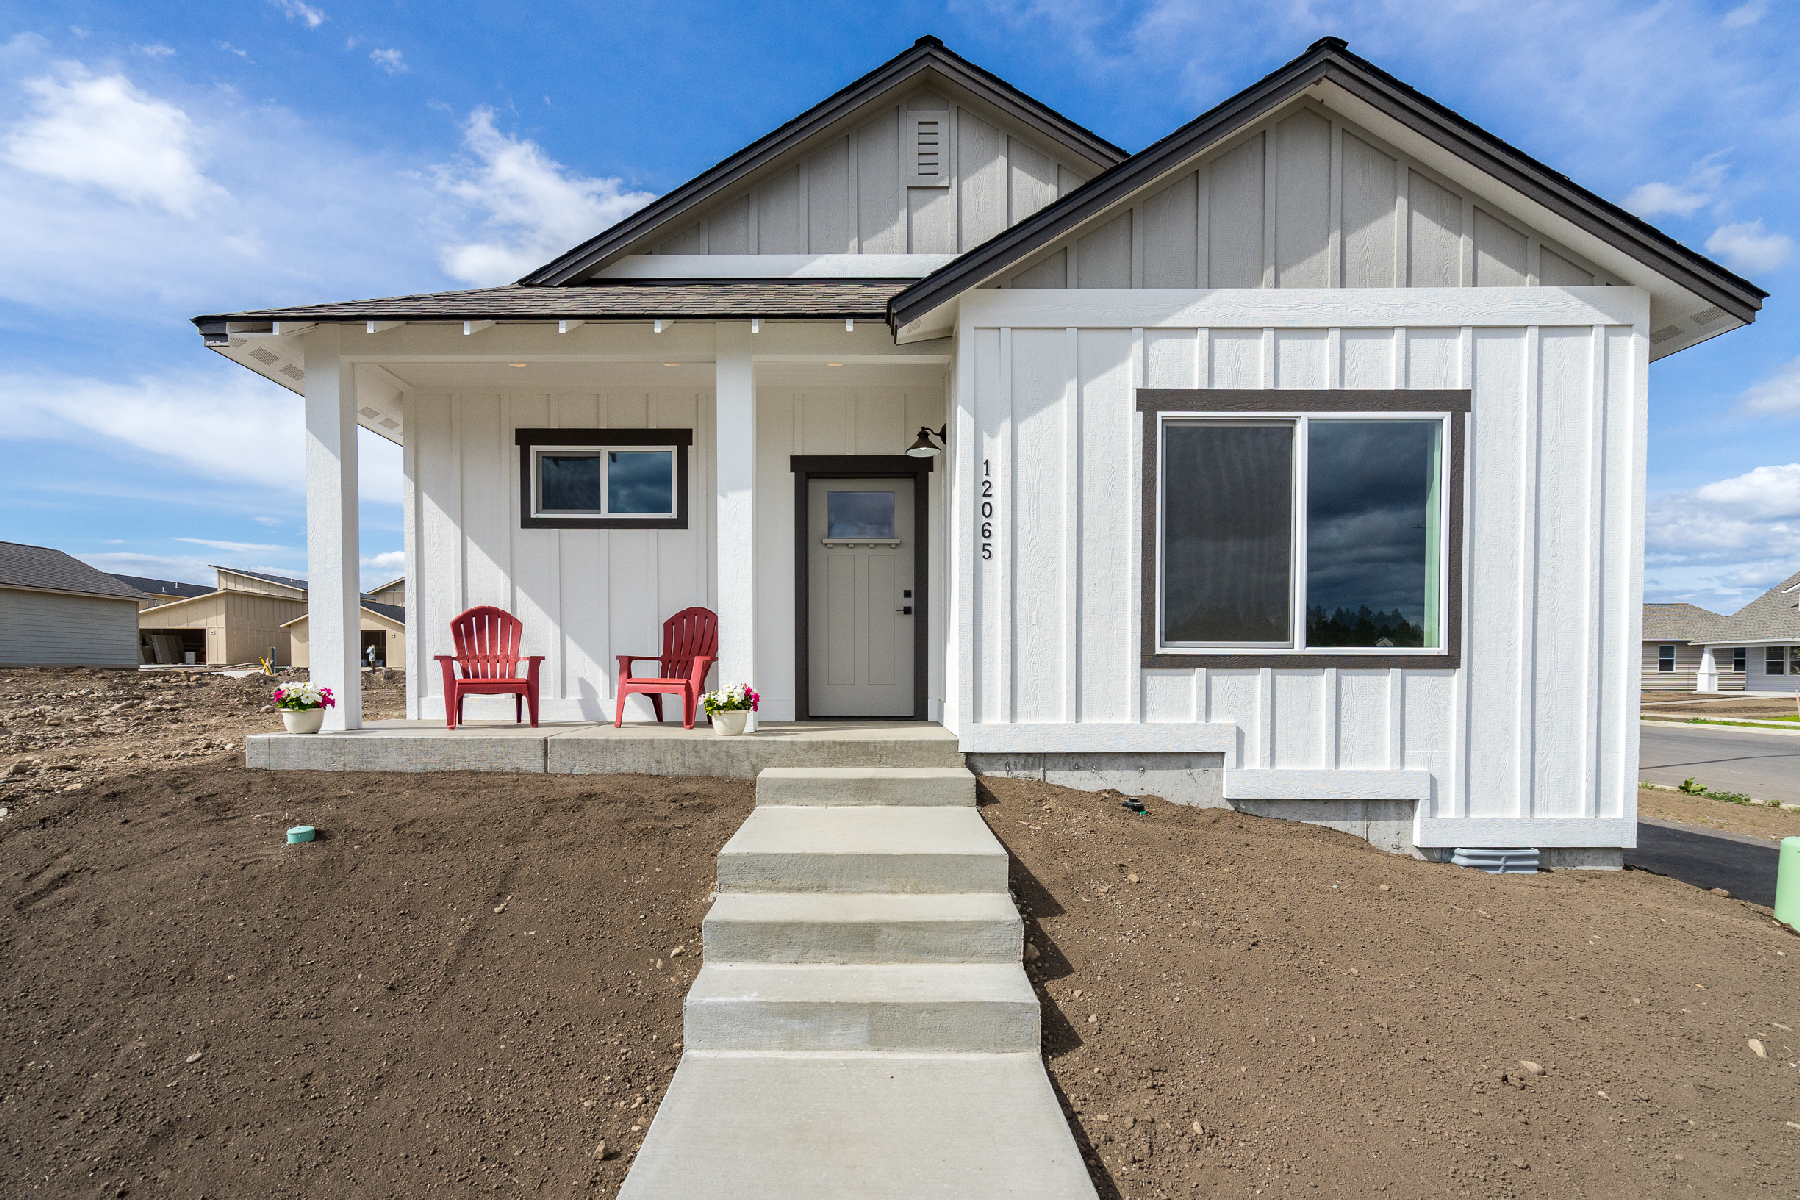 Single Family Homes for Sale at Welcome home to the Trails at River View Ridge 82 Rimrock Priest River, Idaho 83856 United States